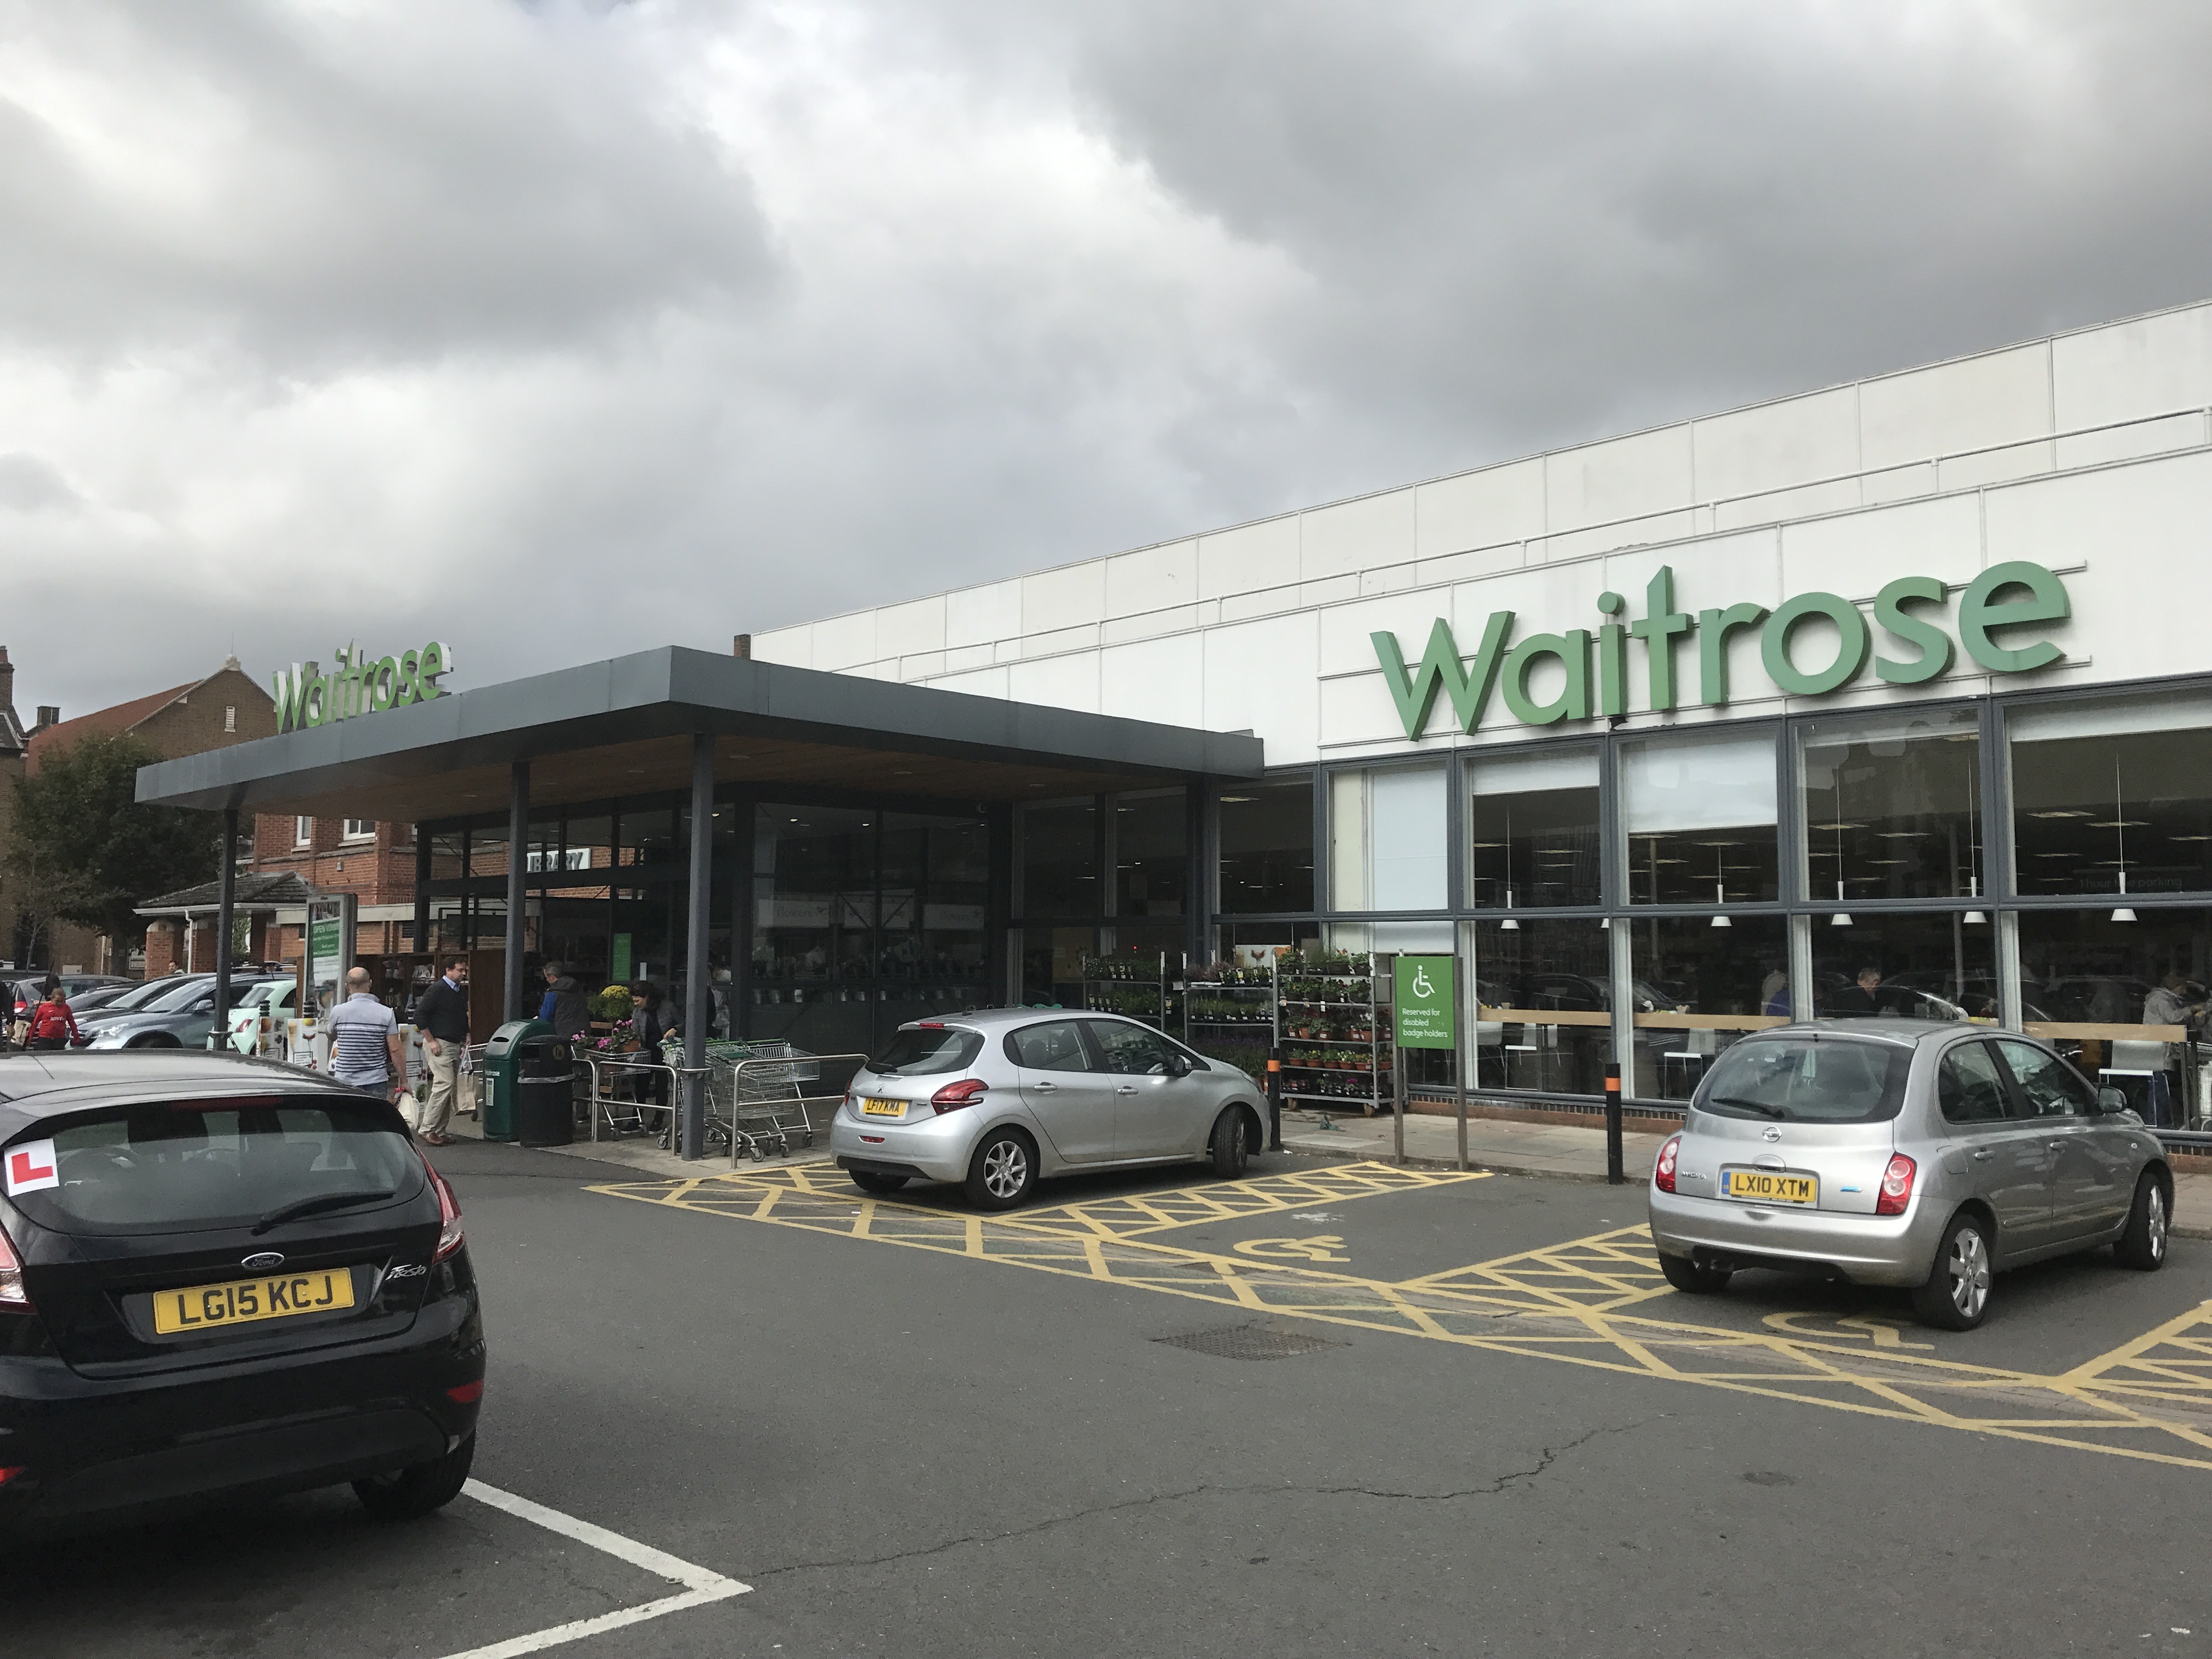 Waitrose Weekend Magazine Fanfares Its New Card Collection And Toyw